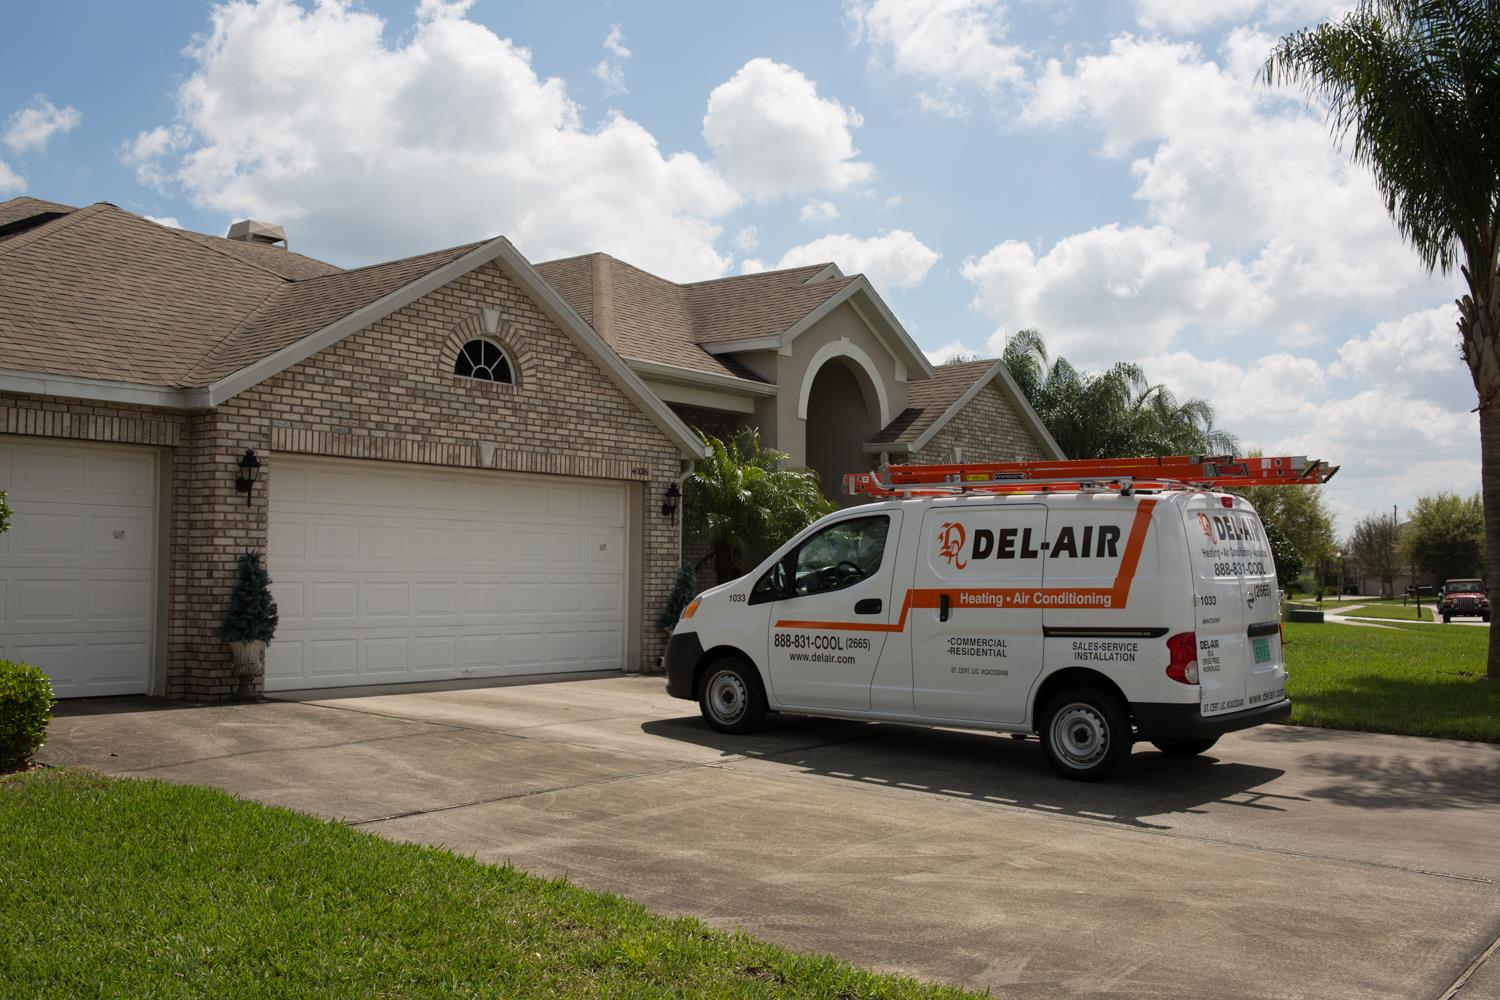 Del-Air van in front of house